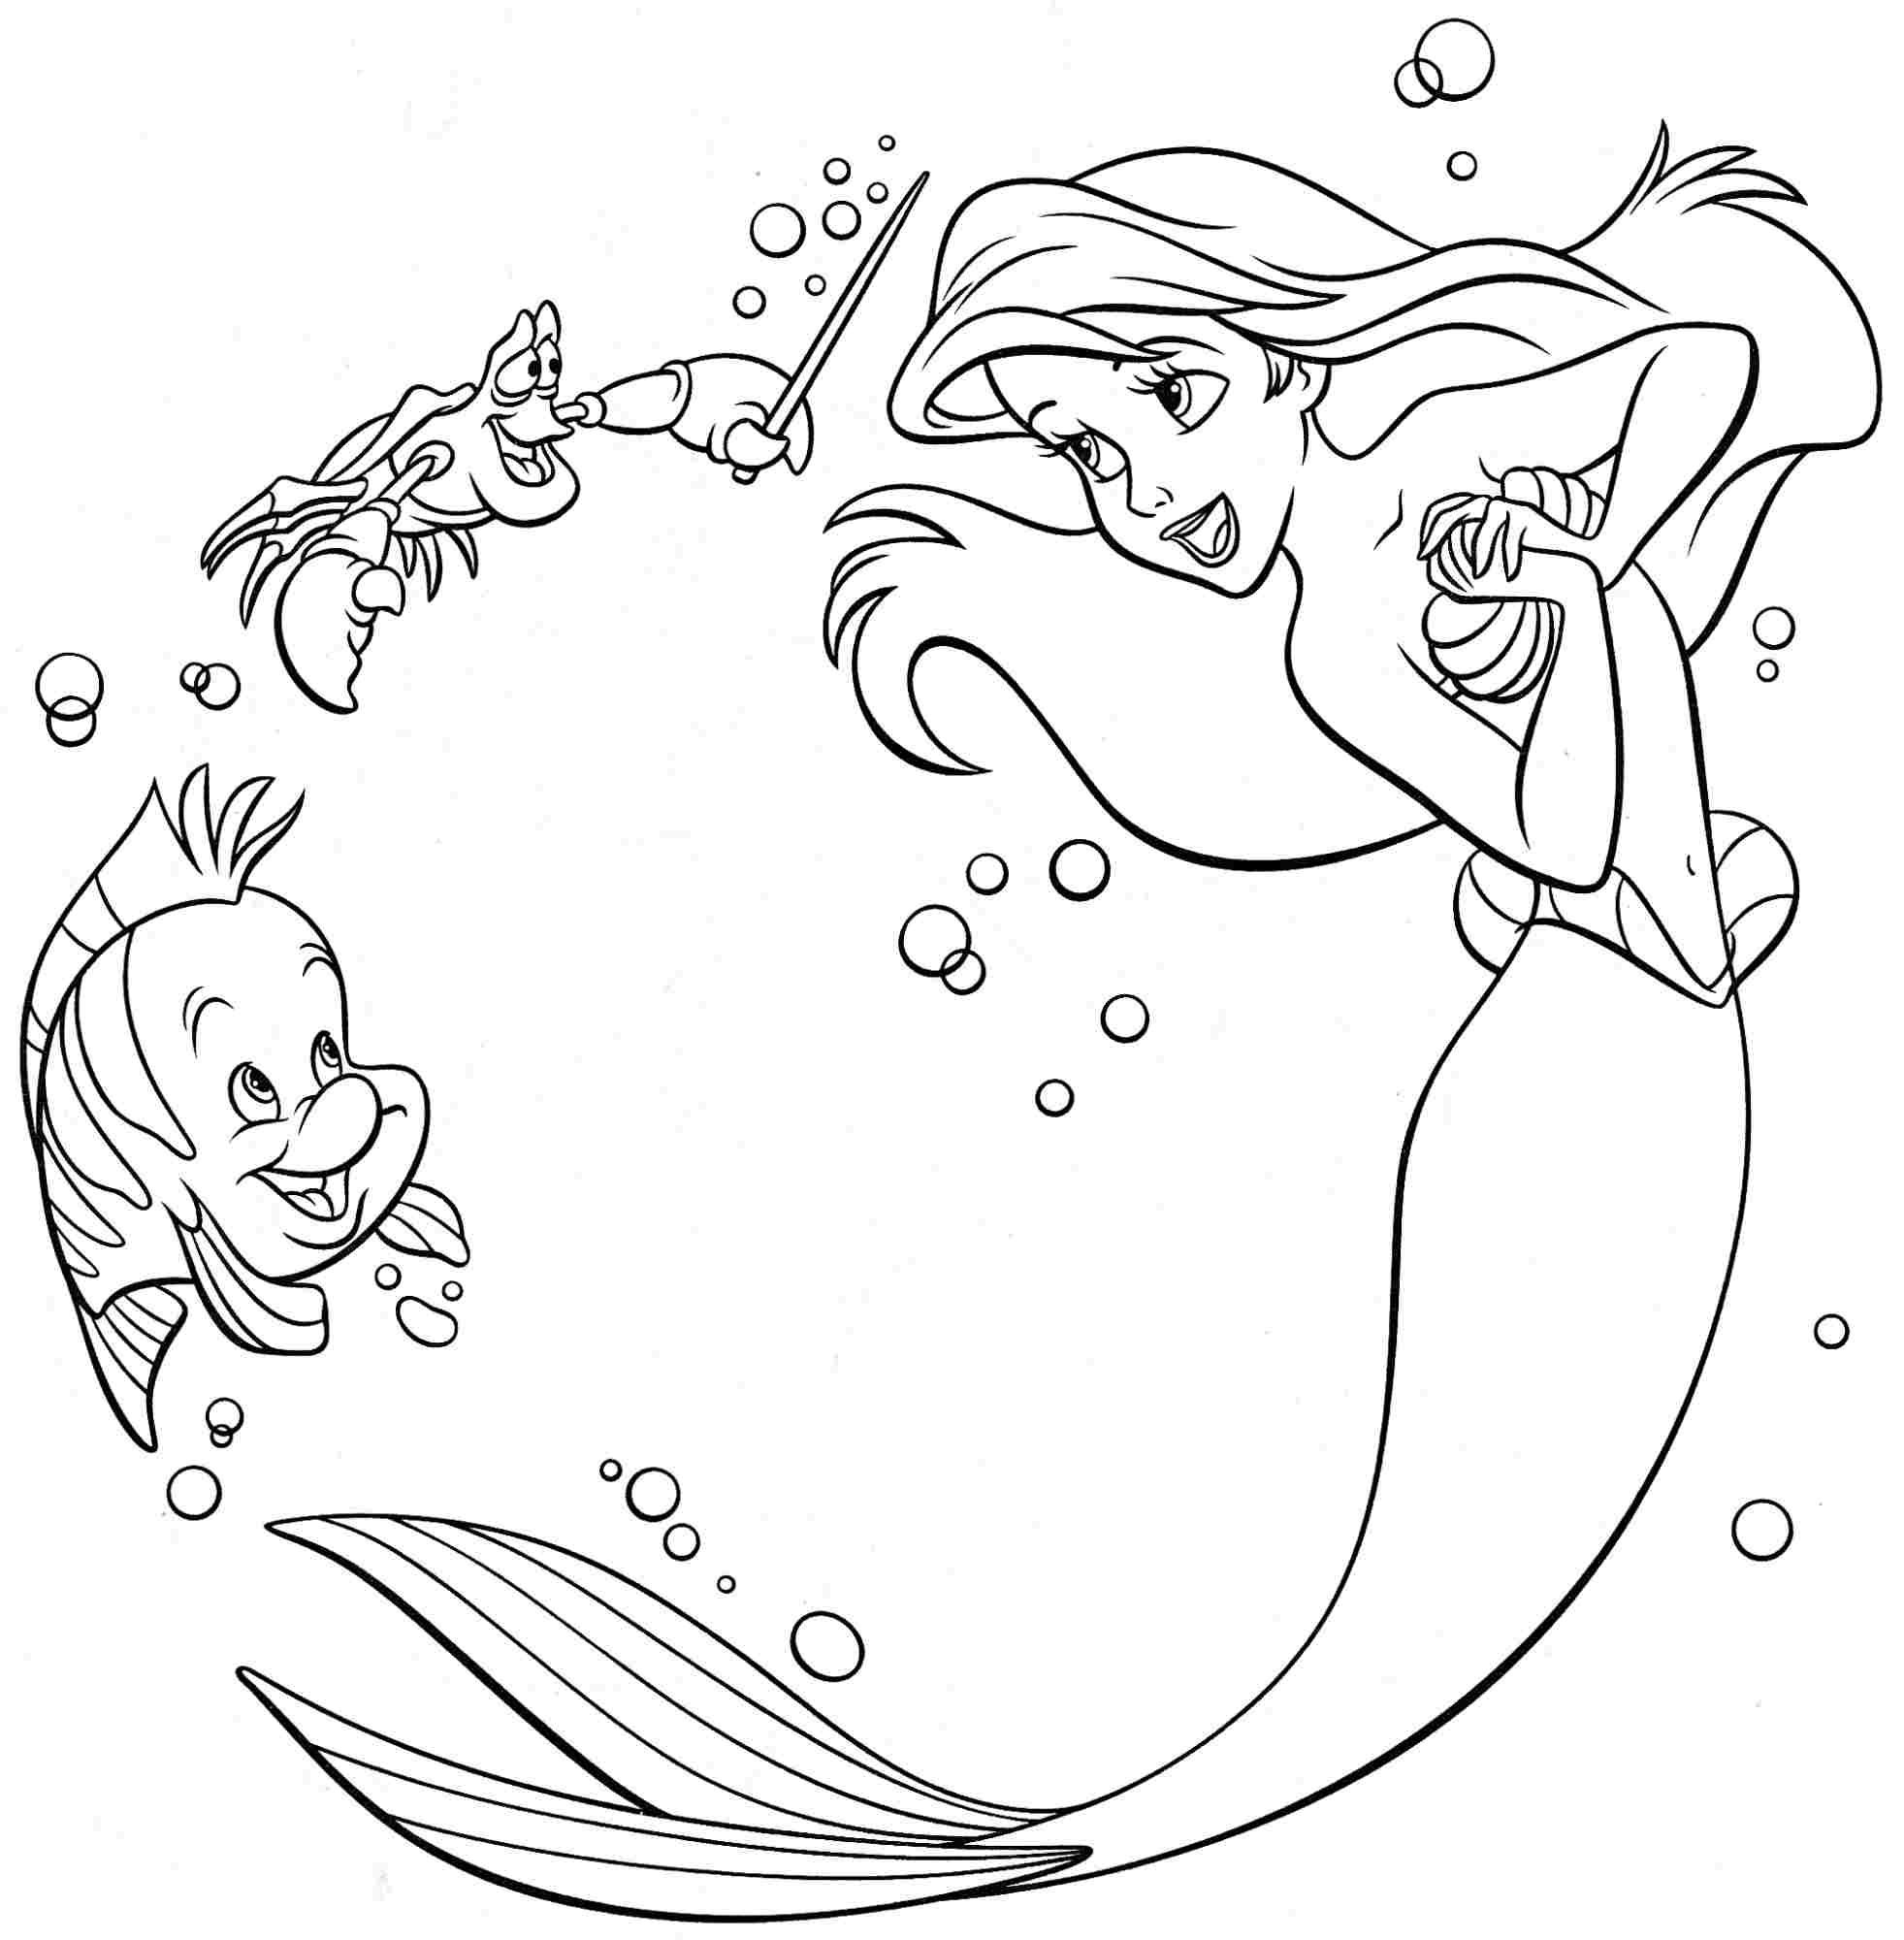 Astounding Ariel Little Mermaid Coloring Pages Free Coloring